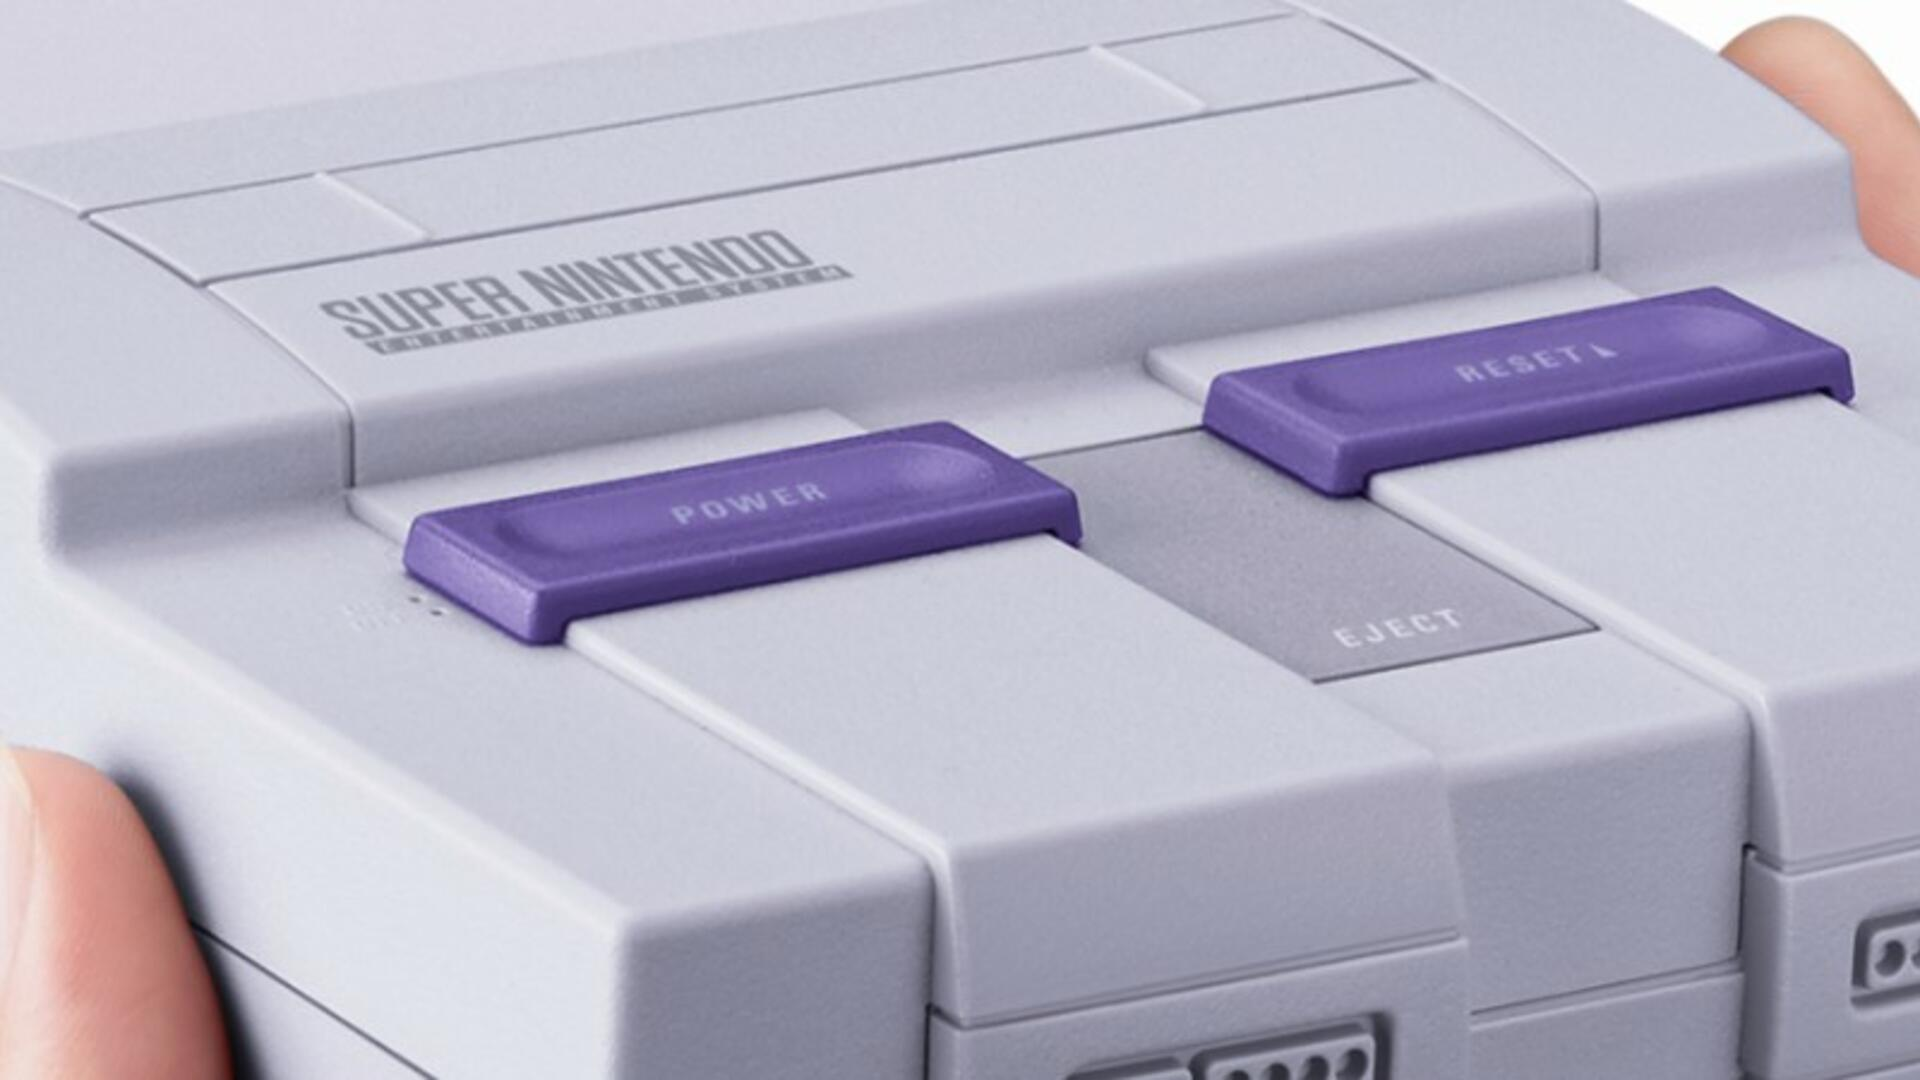 SNES Classic Edition Black Friday Deals - How to Buy a SNES